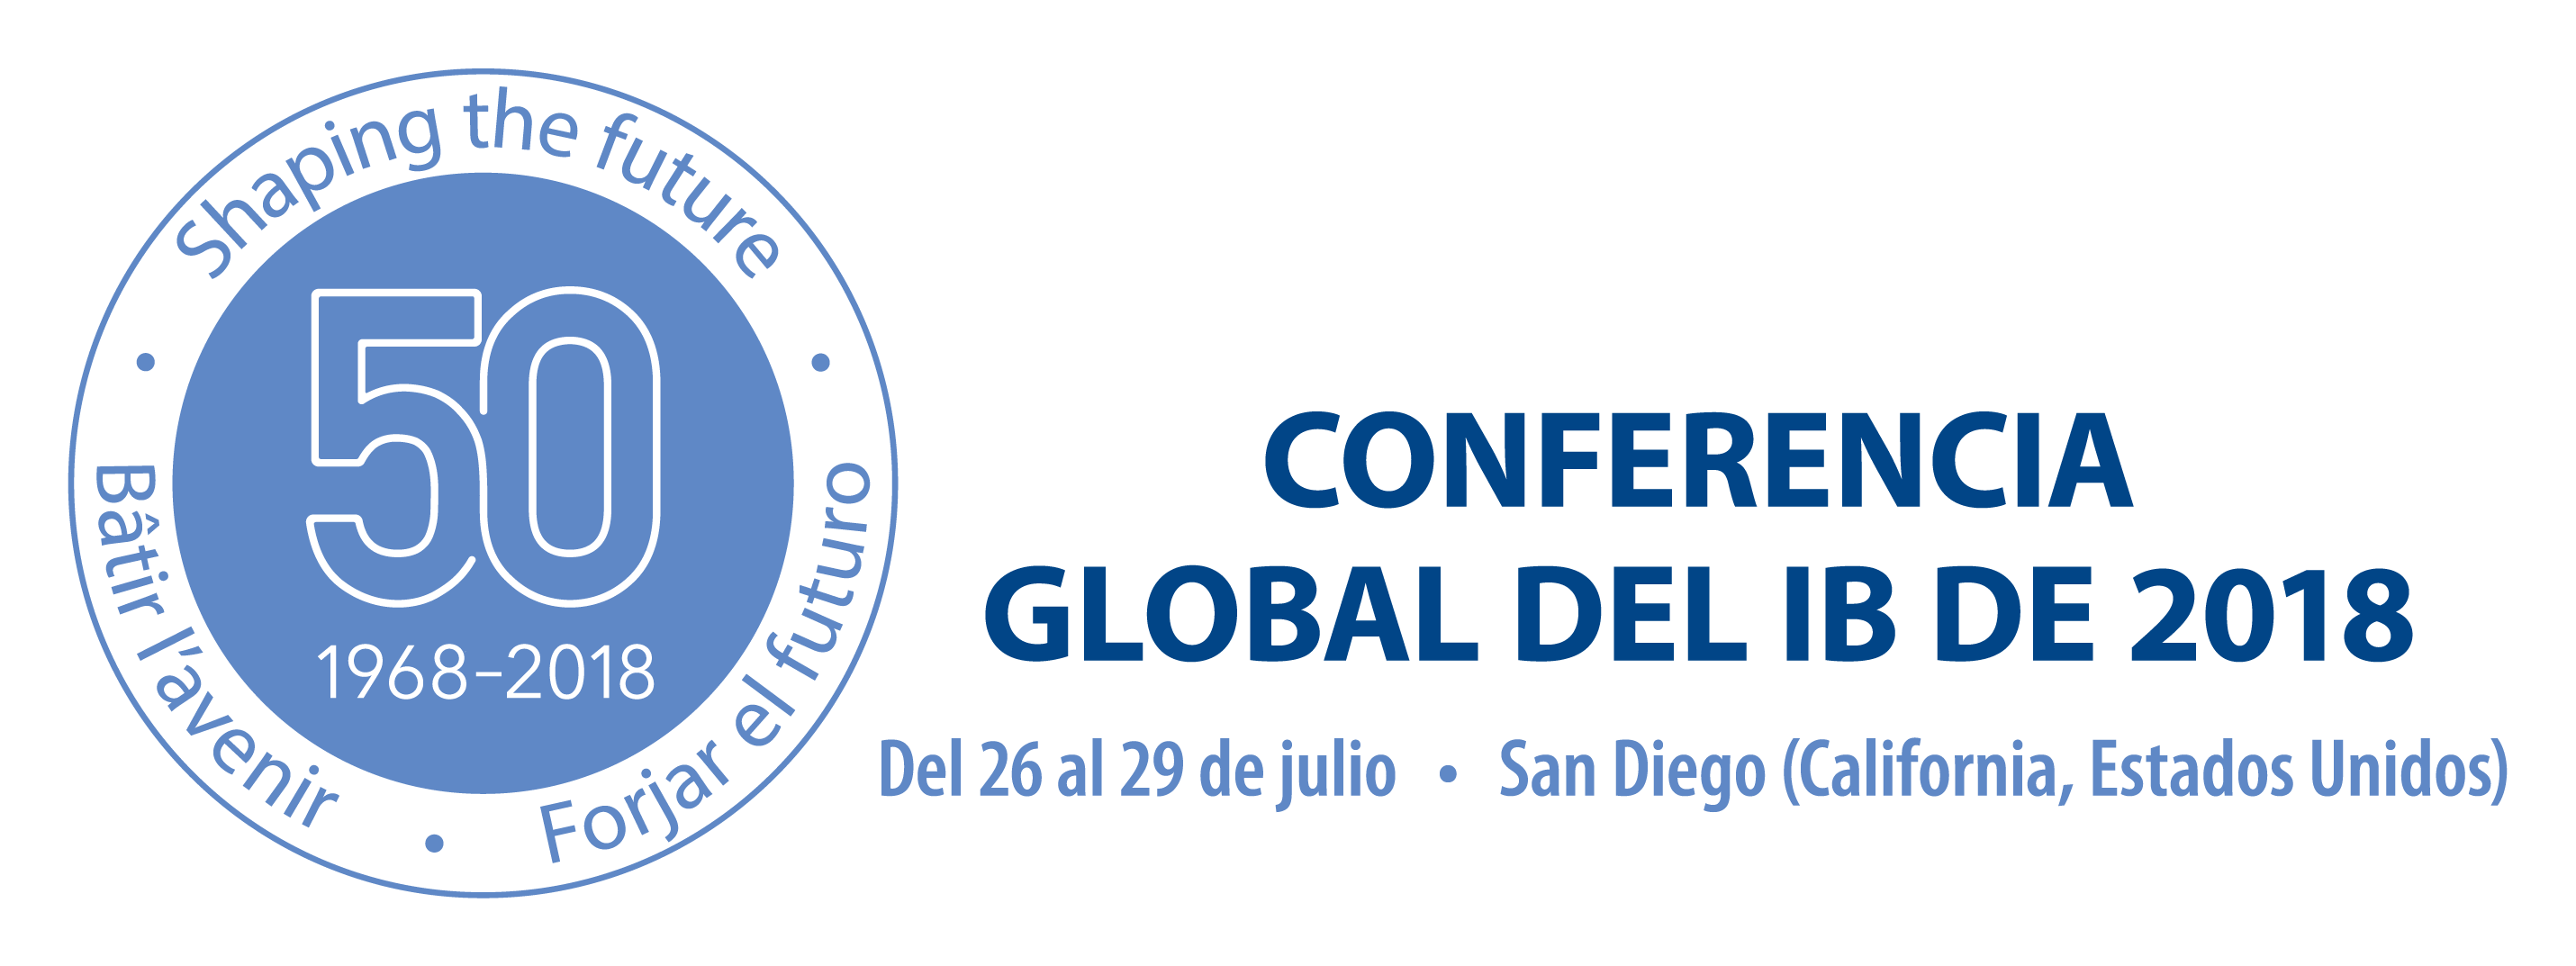 Conferencia global del IB de 2018 en San Diego (Estados Unidos)